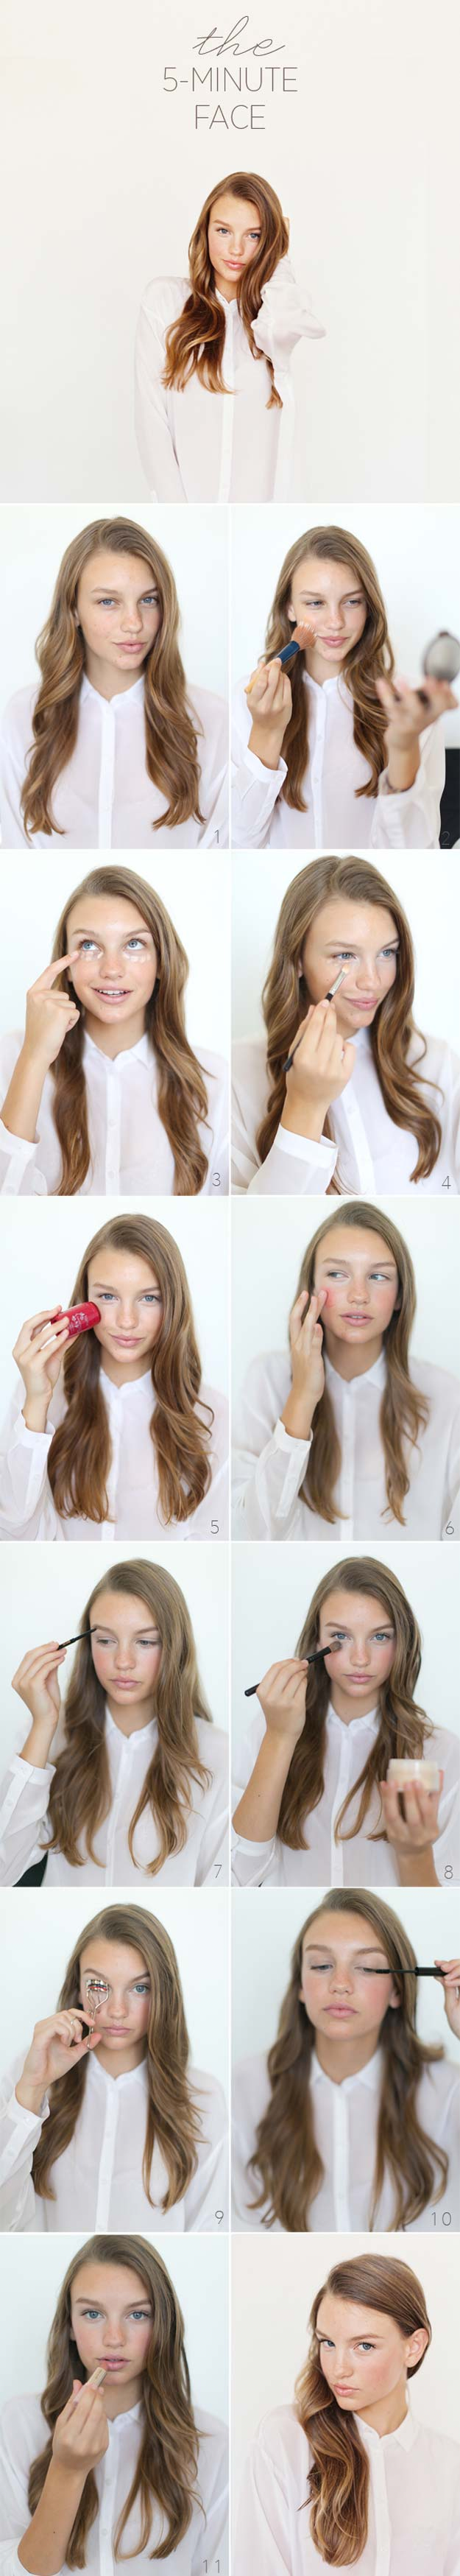 Best Makeup Tutorials for Teens -The 5 Minute Face Beauty Tutorial - Easy Makeup Ideas for Beginners - Step by Step Tutorials for Foundation, Eye Shadow, Lipstick, Cheeks, Contour, Eyebrows and Eyes - Awesome Makeup Hacks and Tips for Simple DIY Beauty - Day and Evening Looks http://diyprojectsforteens.com/makeup-tutorials-teens